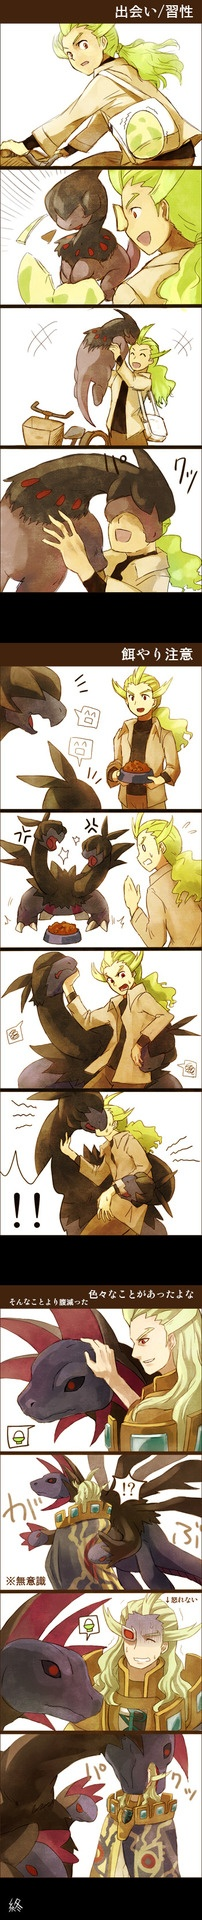 Ghetsis Daw! Preventing the King of Team Plasma can resist loving Pokemon XD